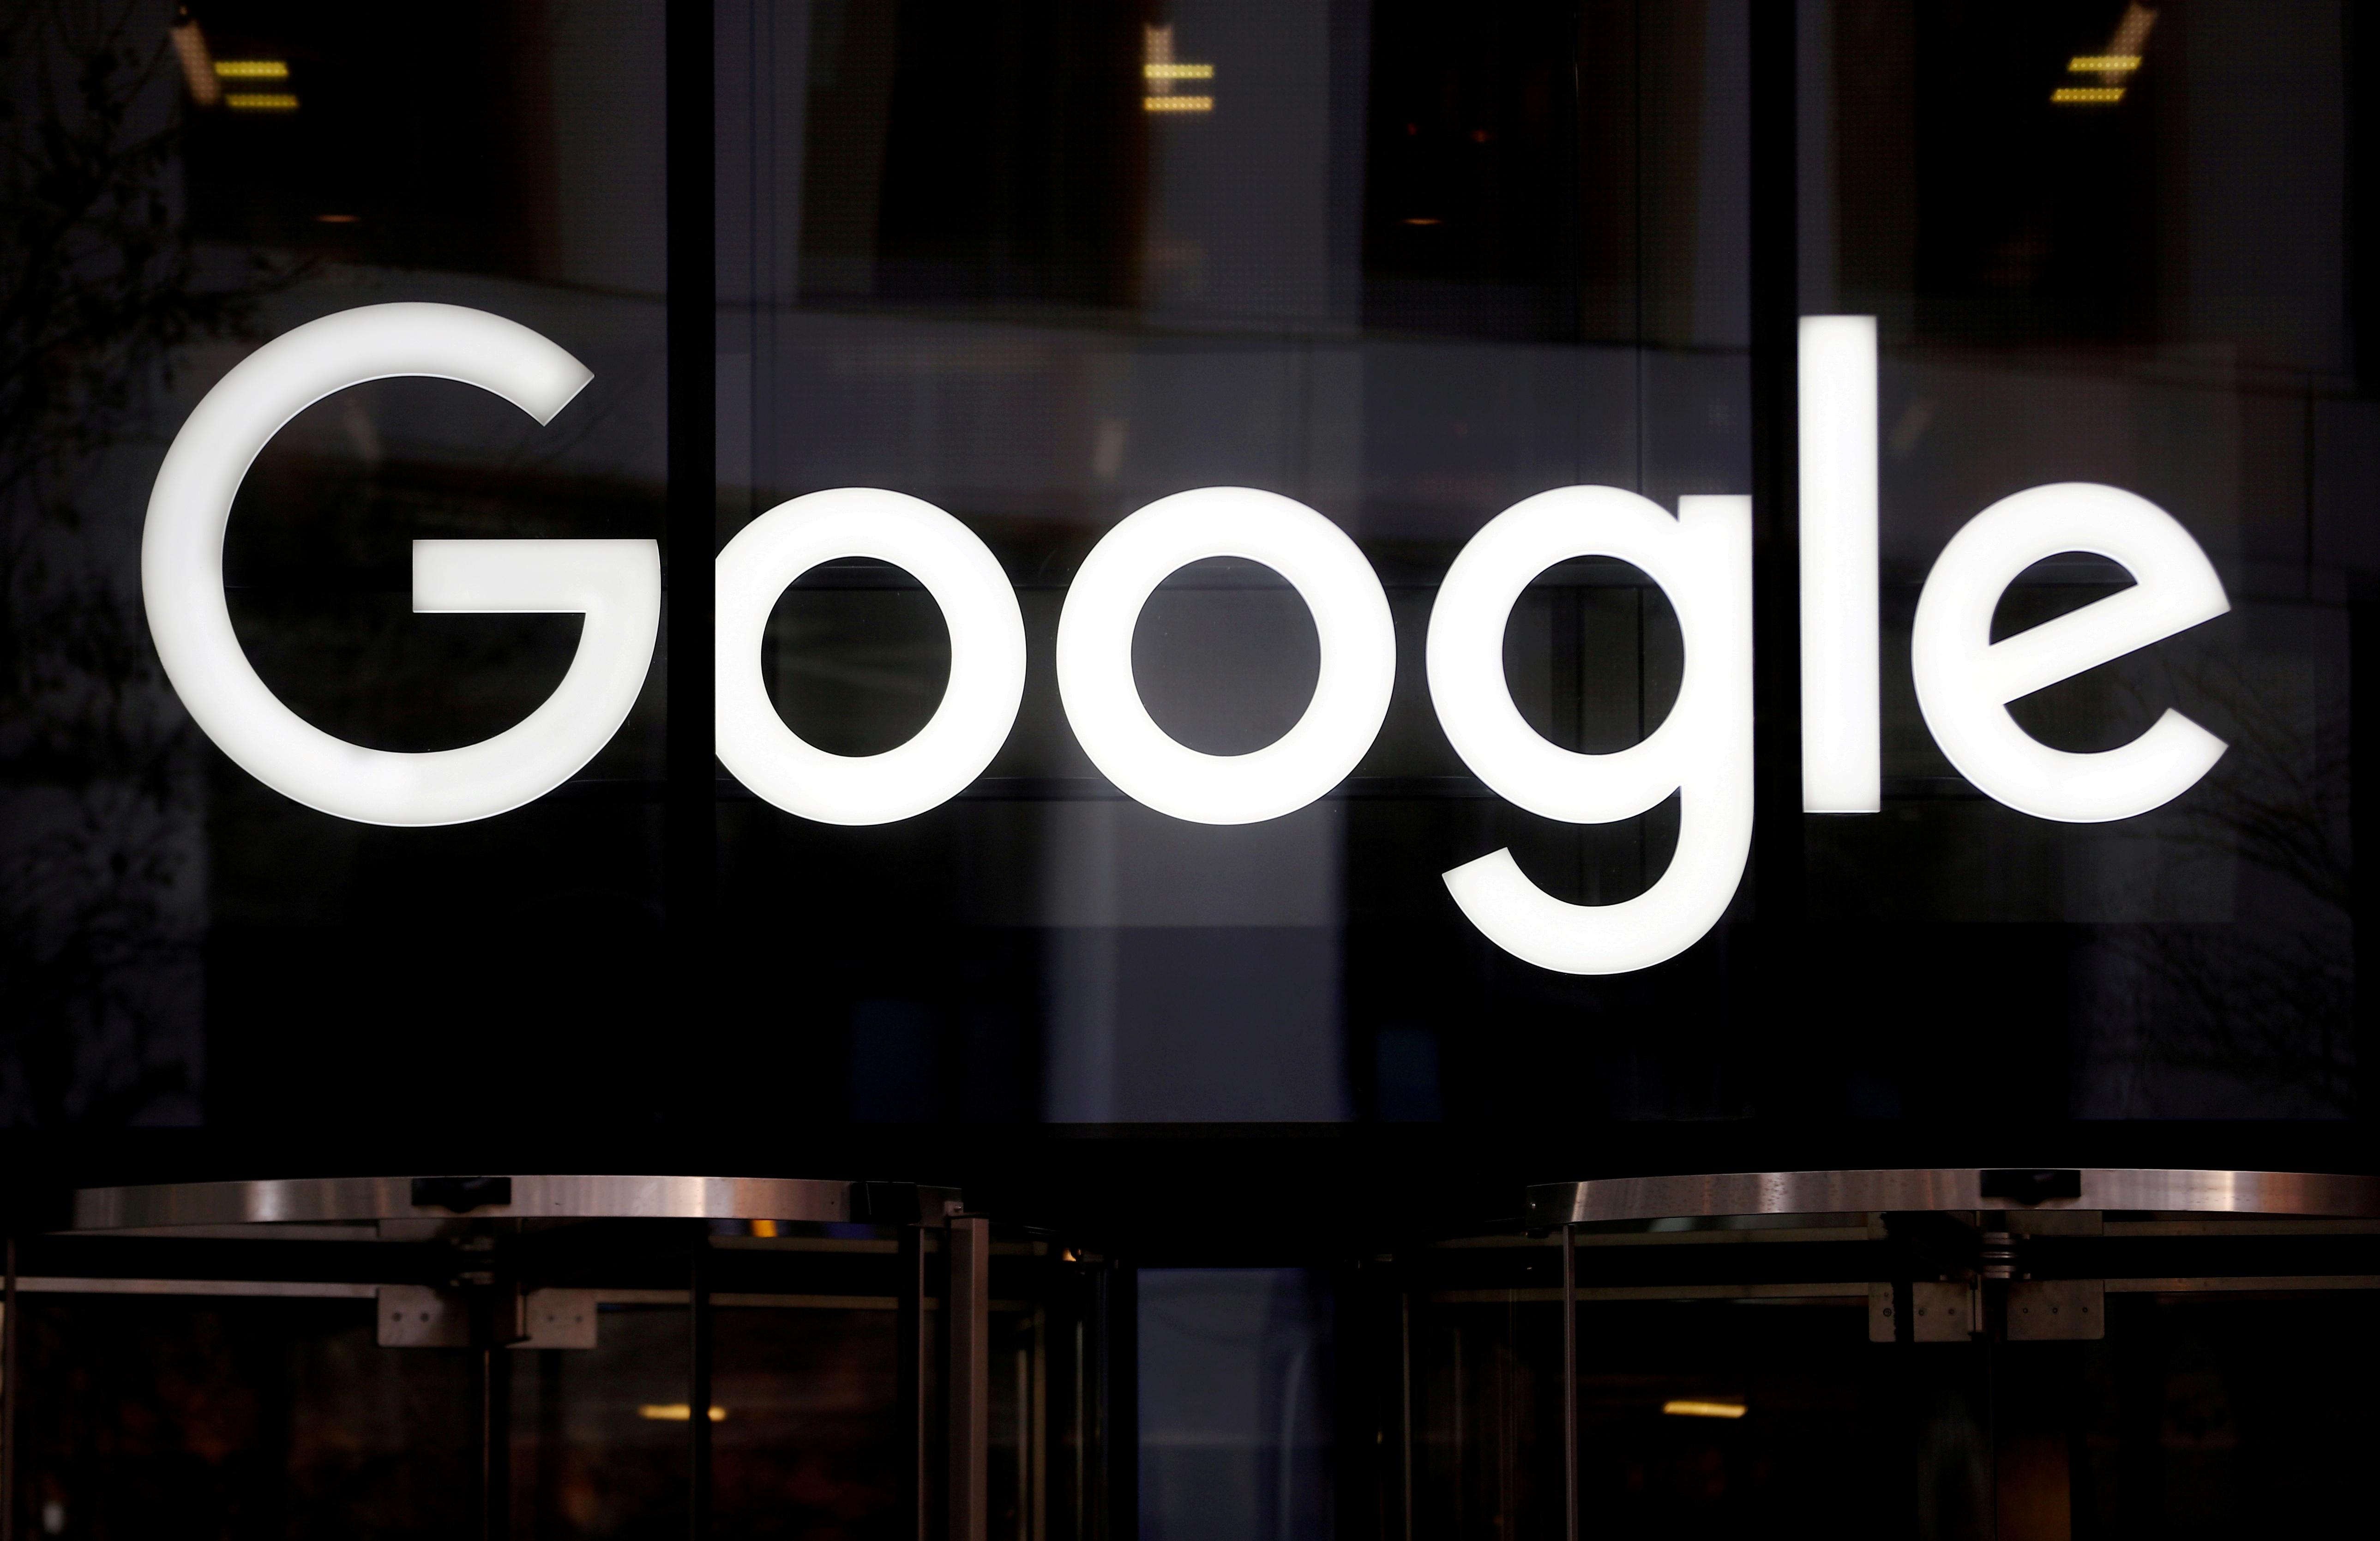 The Google logo is pictured at the entrance to the Google offices in London, Britain January 18, 2019. Hannah McKay